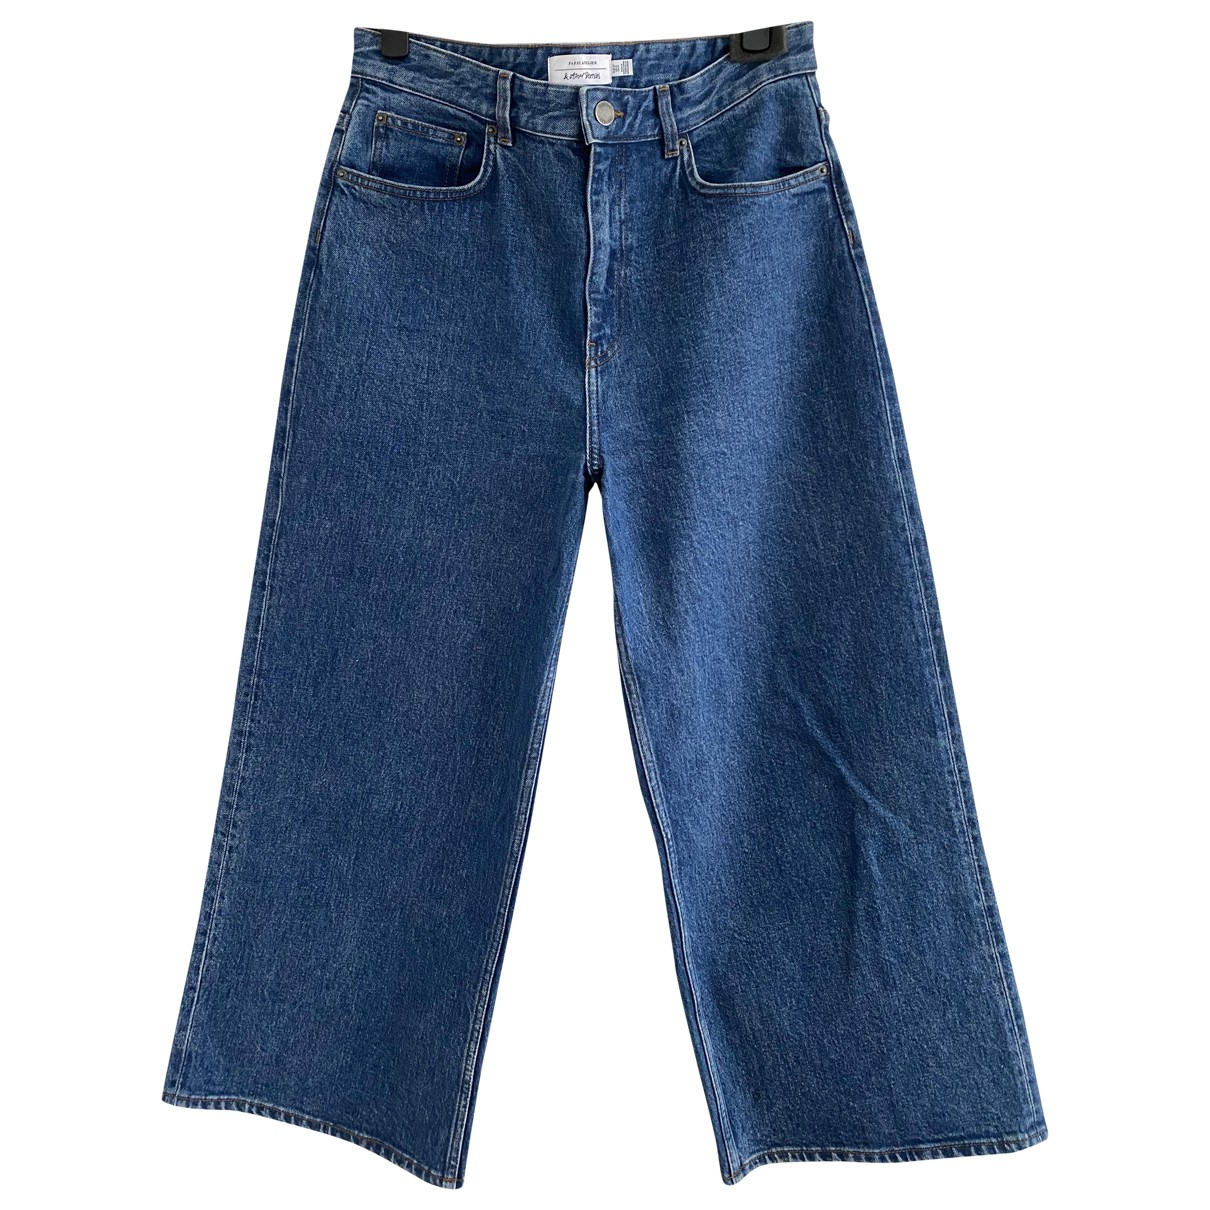 & Stories \N Blue Cotton - elasthane Jeans for Women 31 US